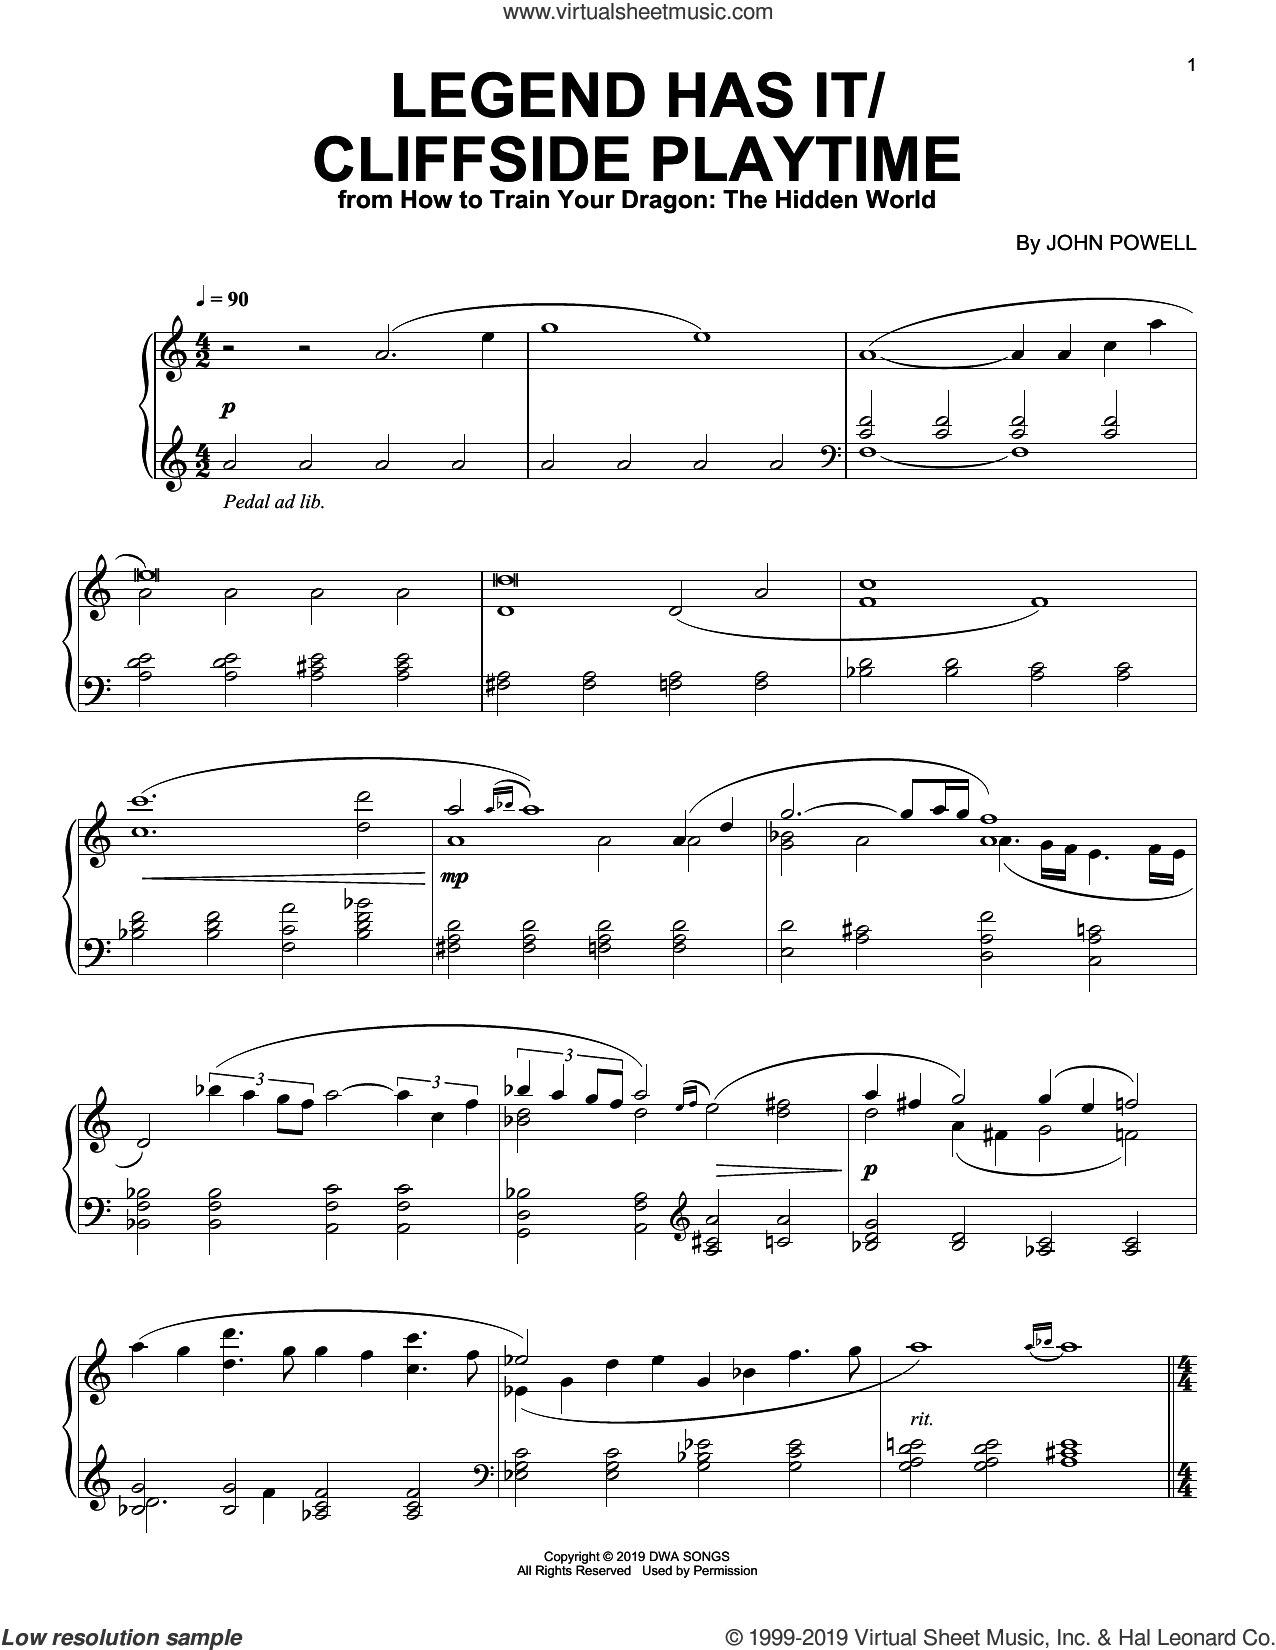 Legend Has It/Cliffside Playtime (from How to Train Your Dragon: The Hidden World) sheet music for piano solo by John Powell, intermediate skill level